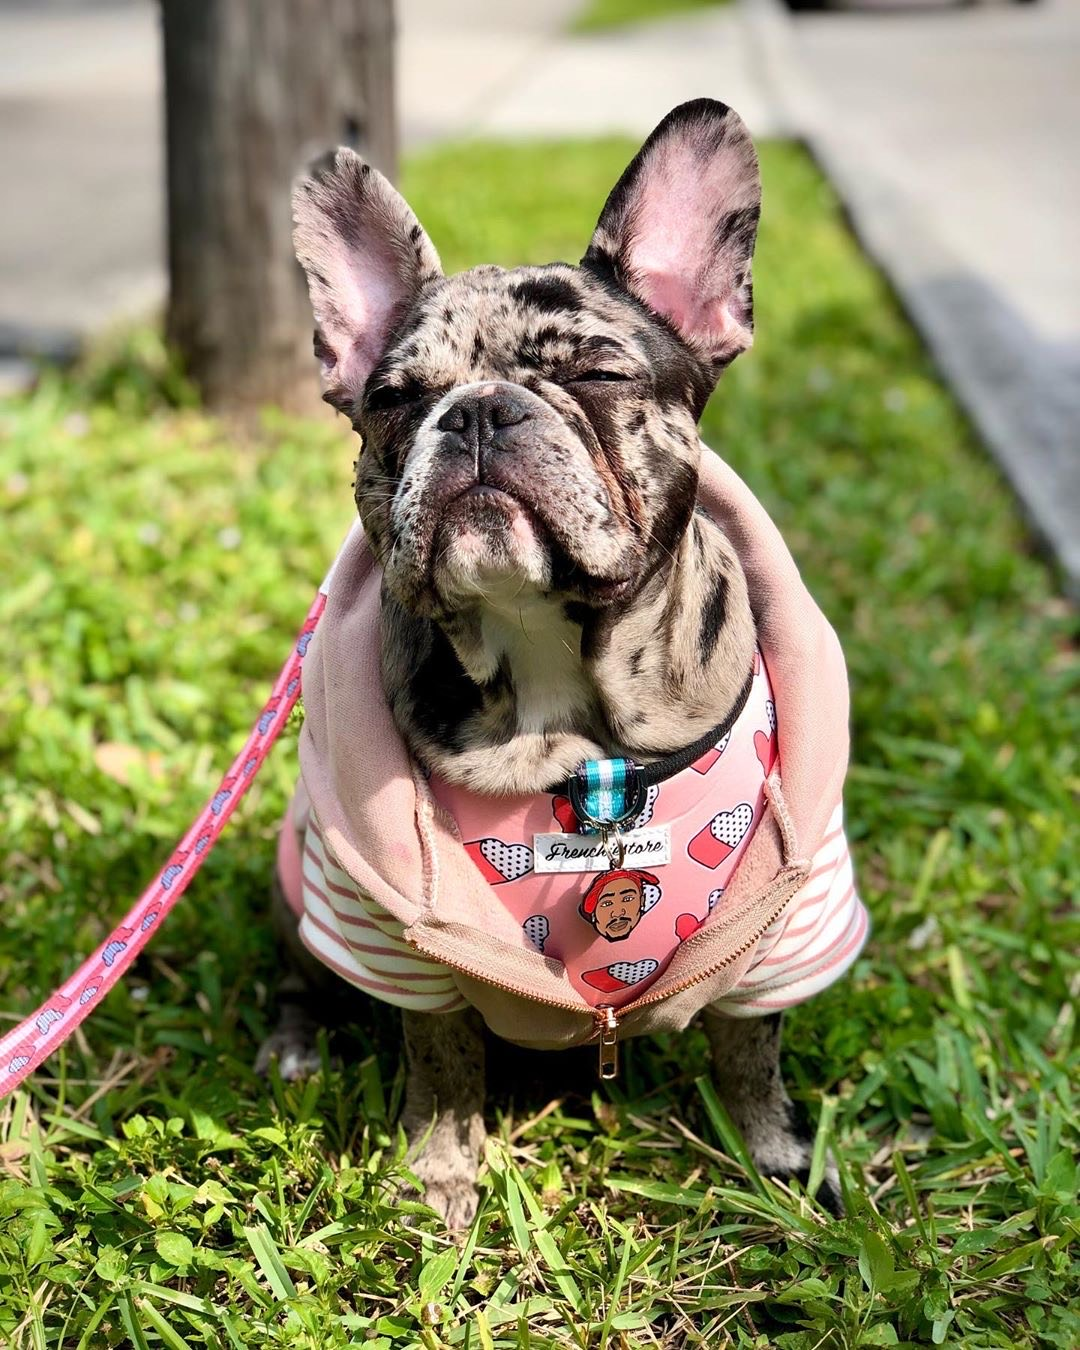 https://frenchiestore.com/collections/french-bulldog-versatile-health-harness/products/french-bulldog-harness-versatile-health-harness-frenchie-love